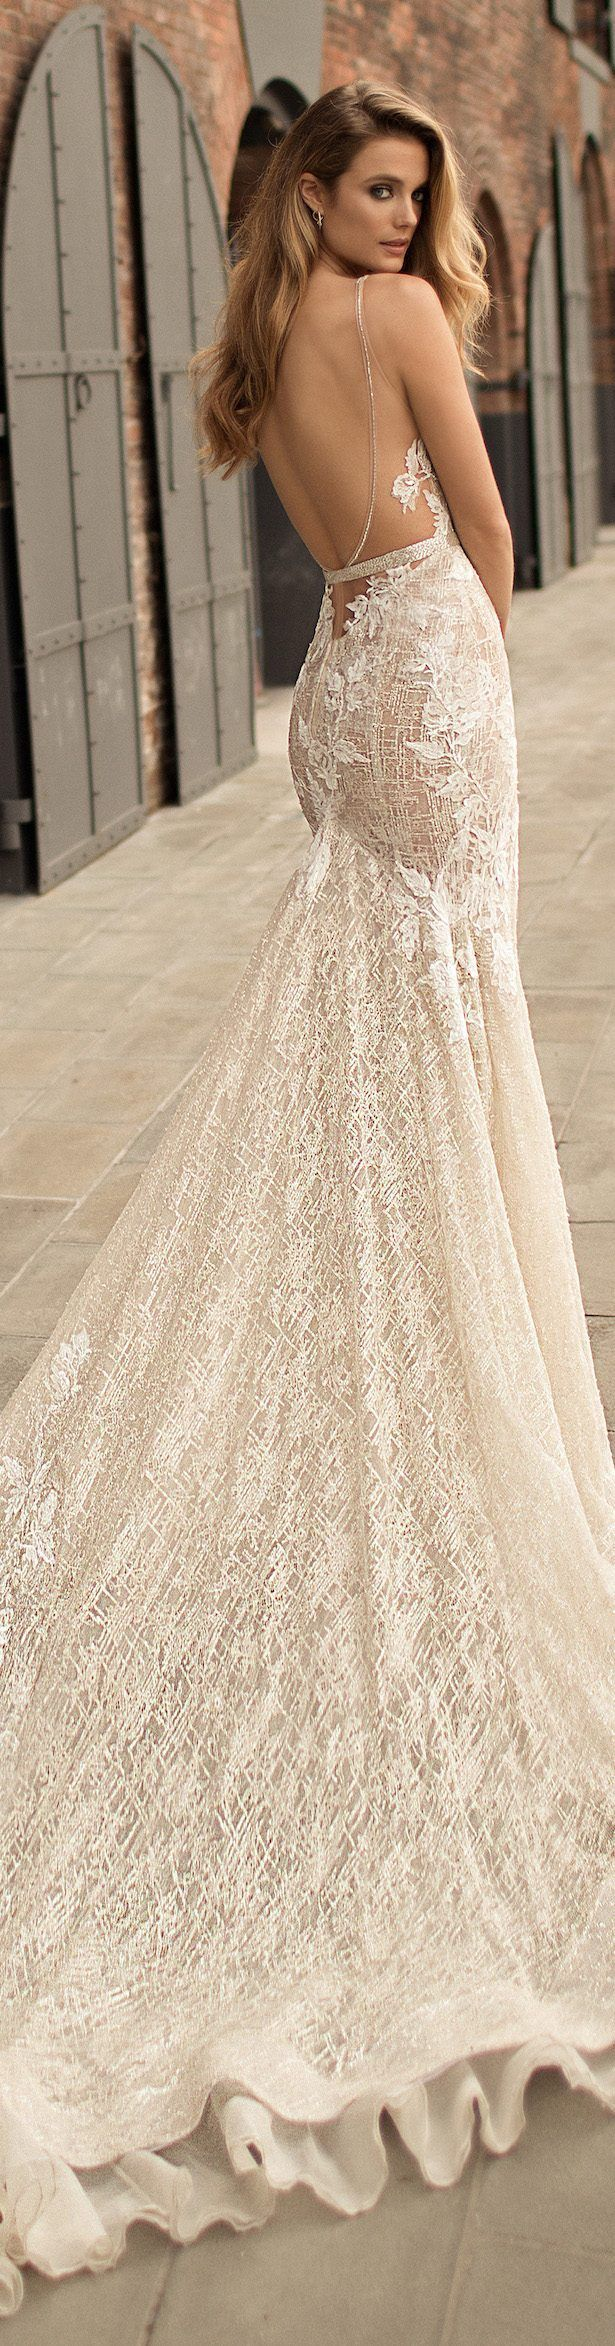 Berta wedding dress collection spring in karim